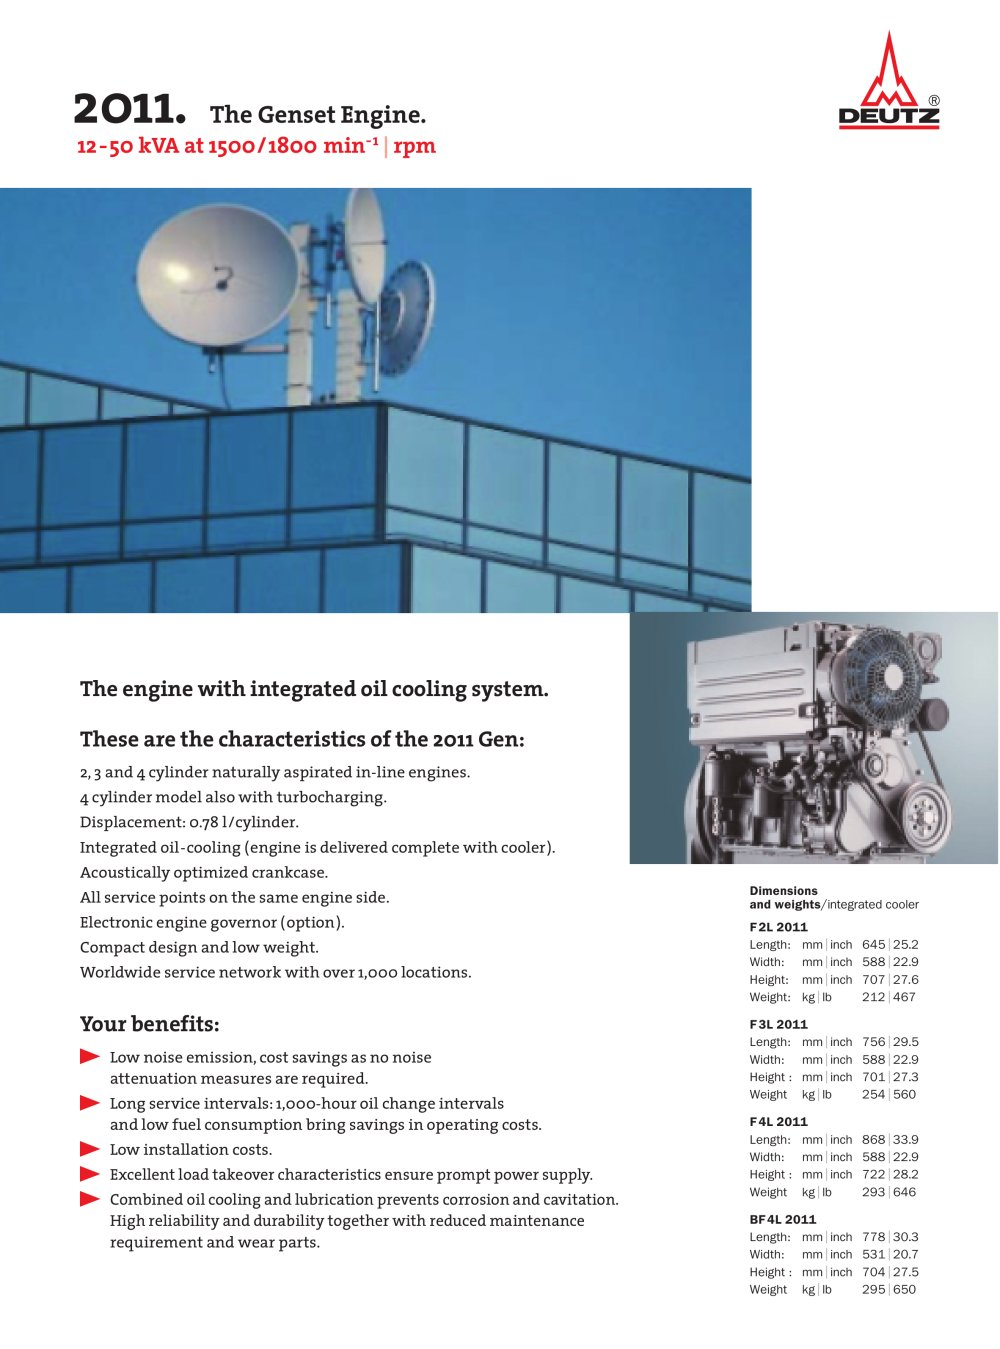 L 2011 The genset engine - 1 / 2 Pages